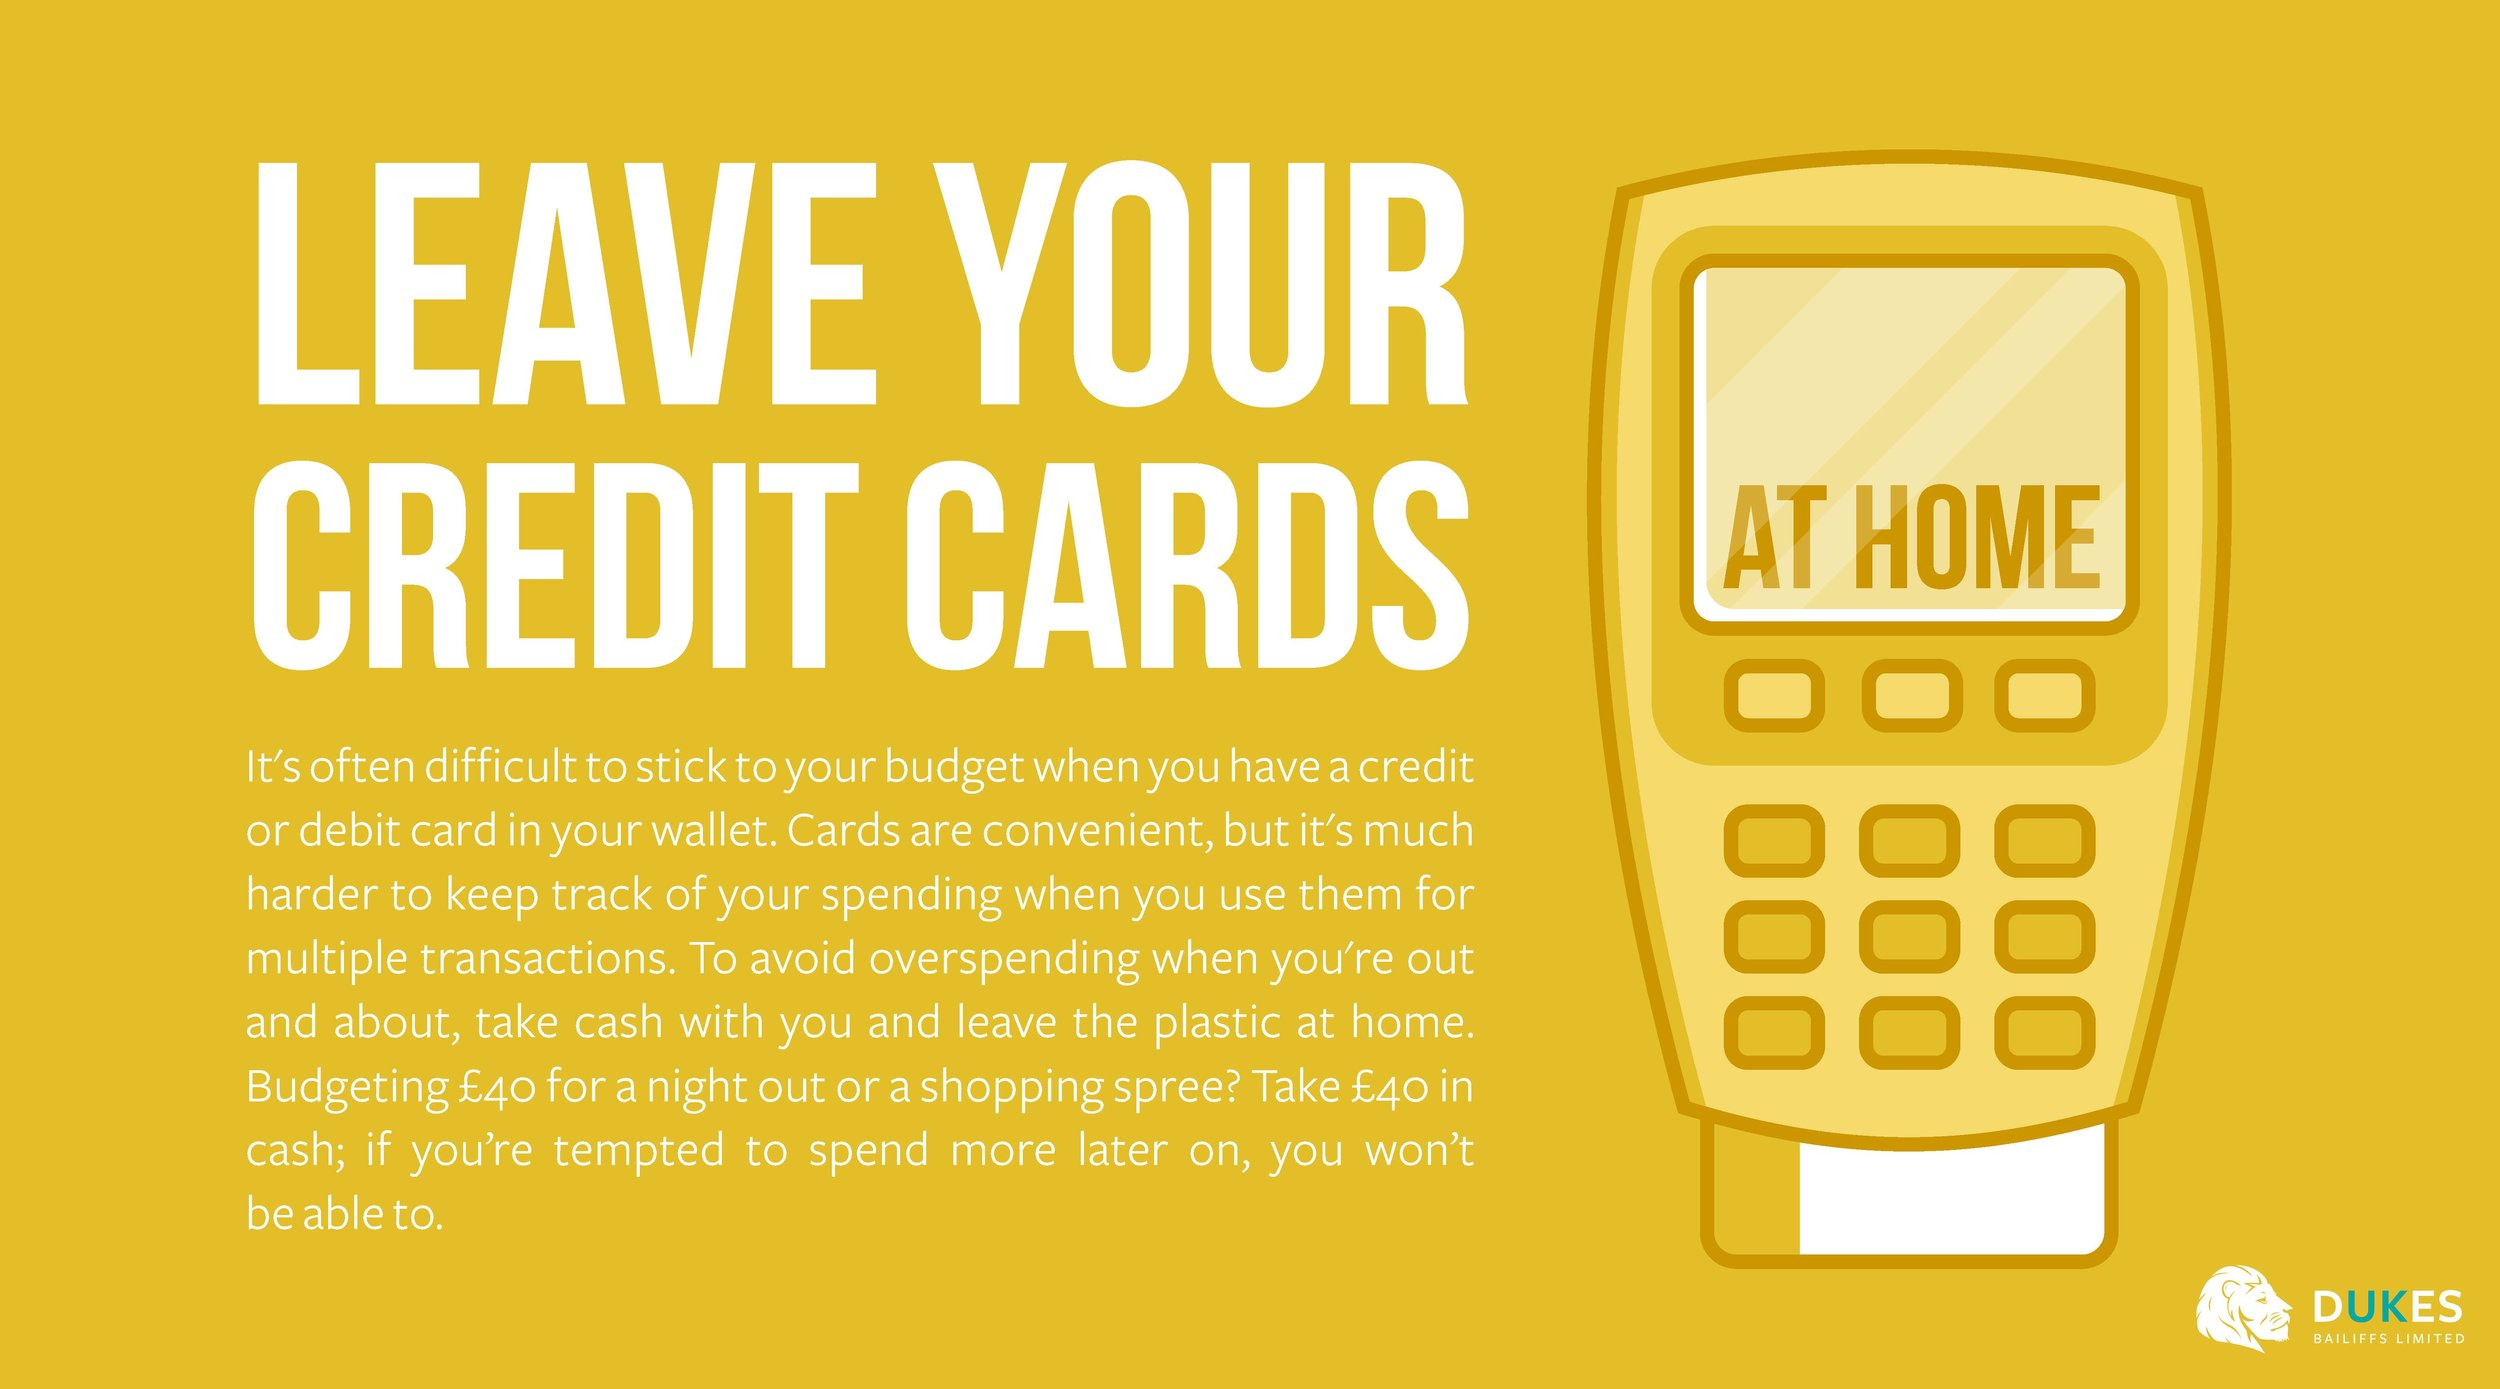 6. Leave your credit cards at home - Dukes.jpg